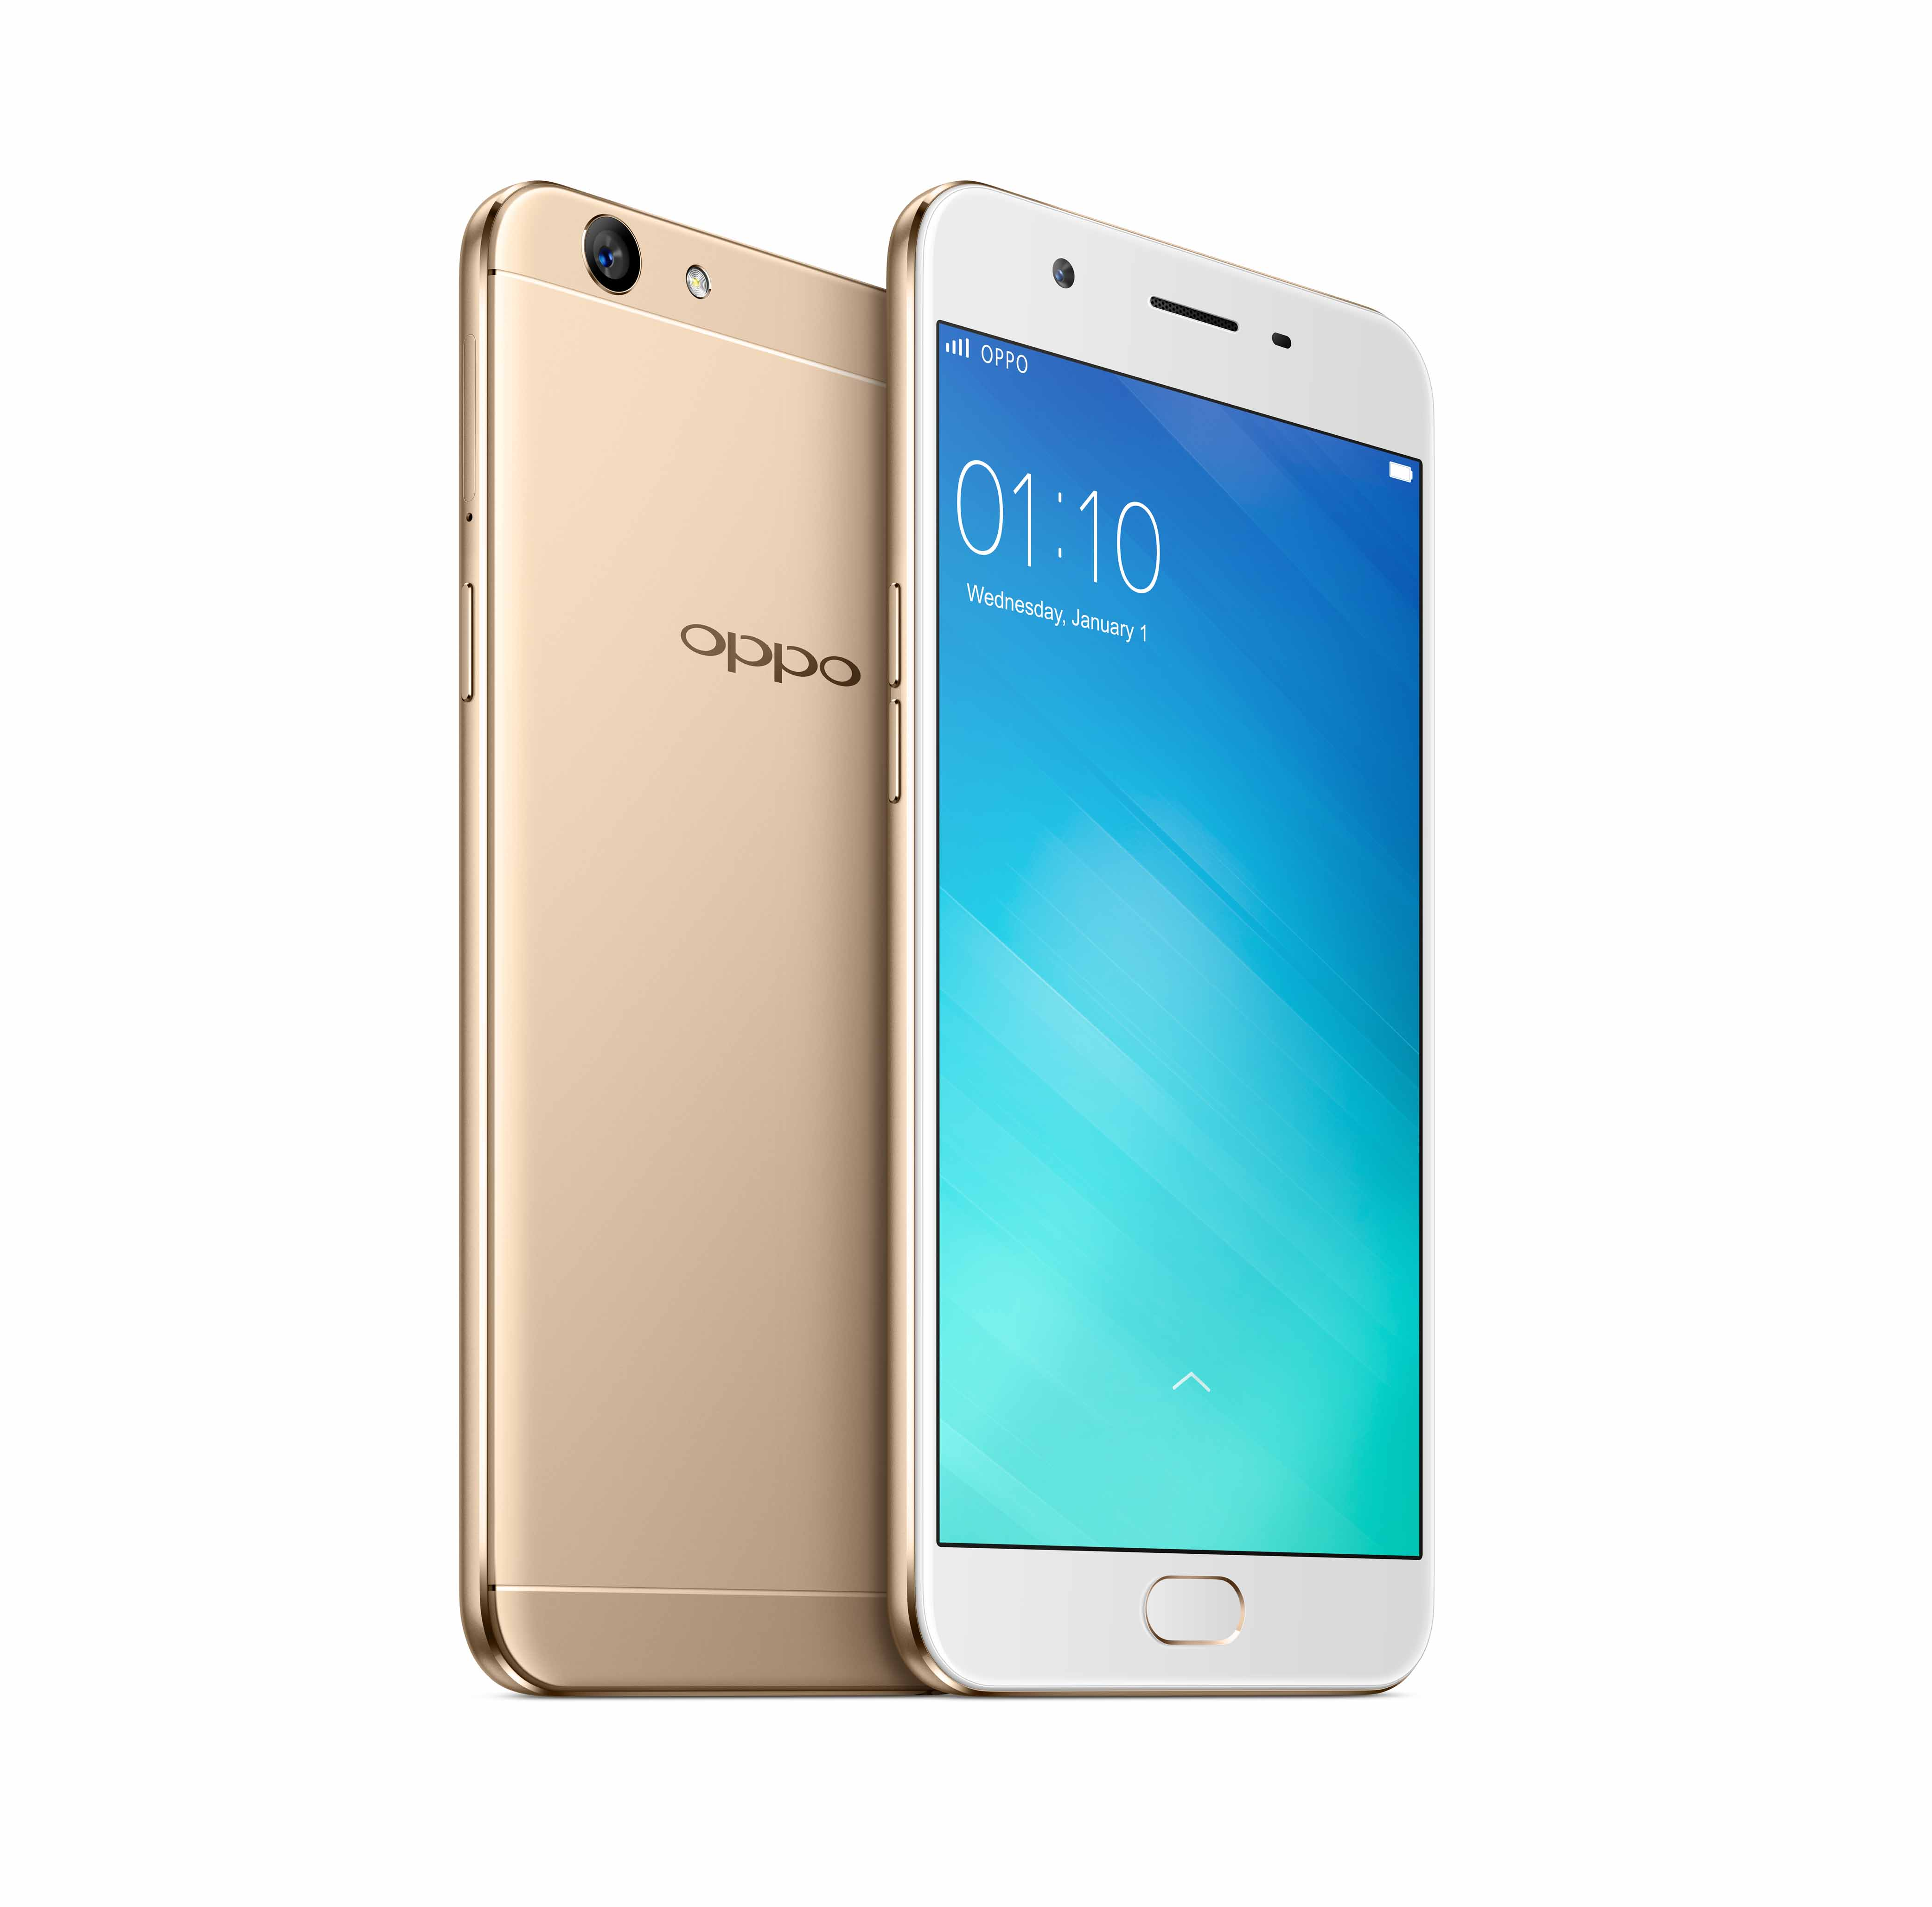 oppo-f1s-product-image-1s